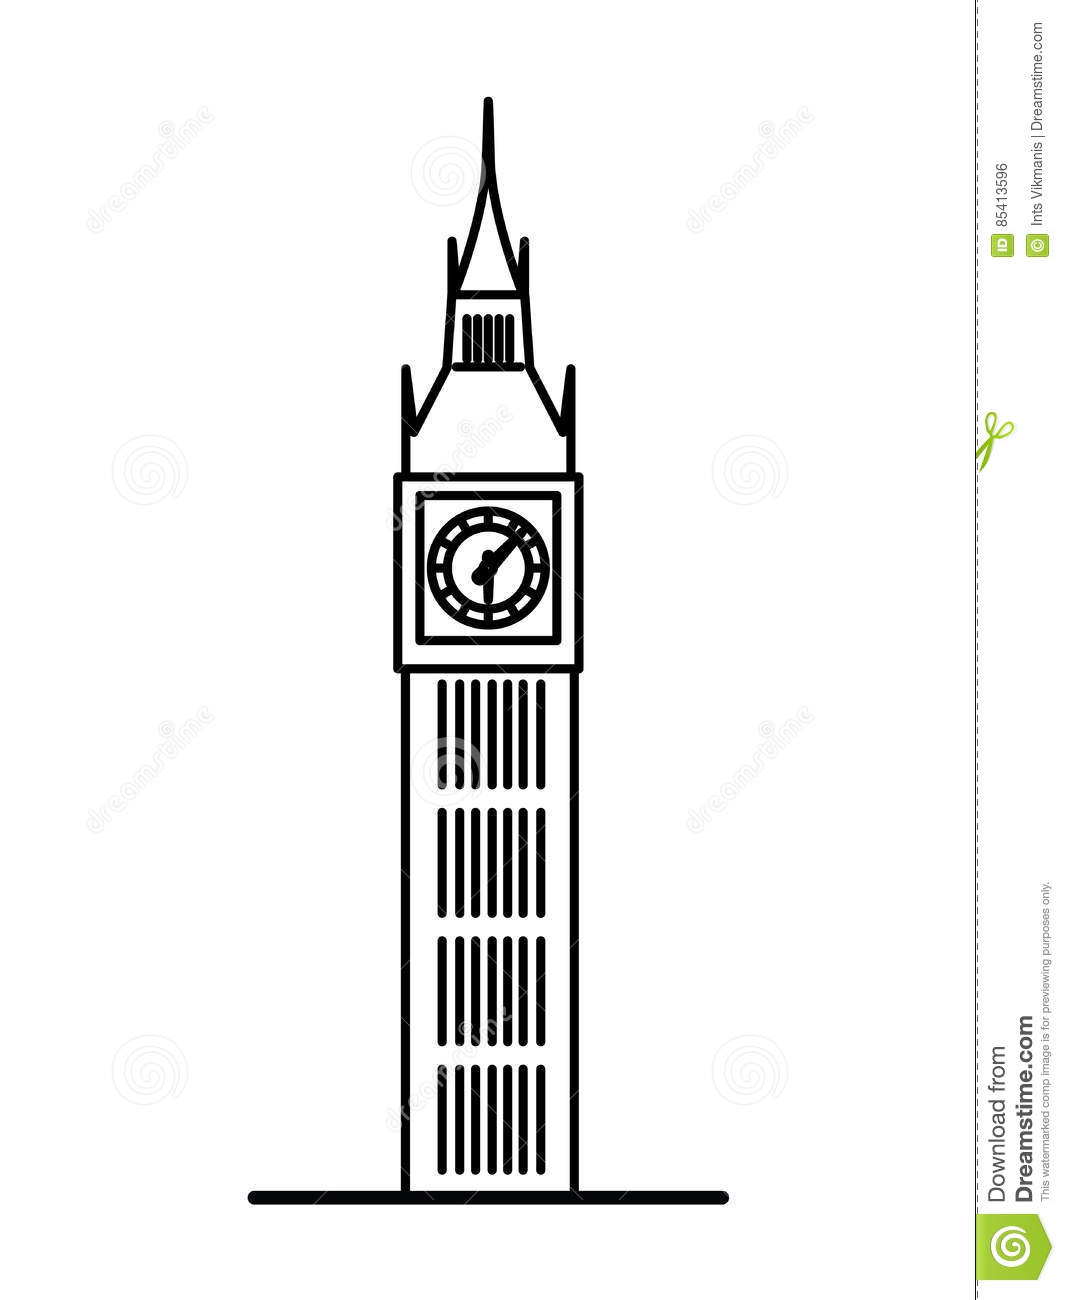 london big ben linear illustration stock vector illustration of rh dreamstime com big ben london clipart free big ben clipart black and white